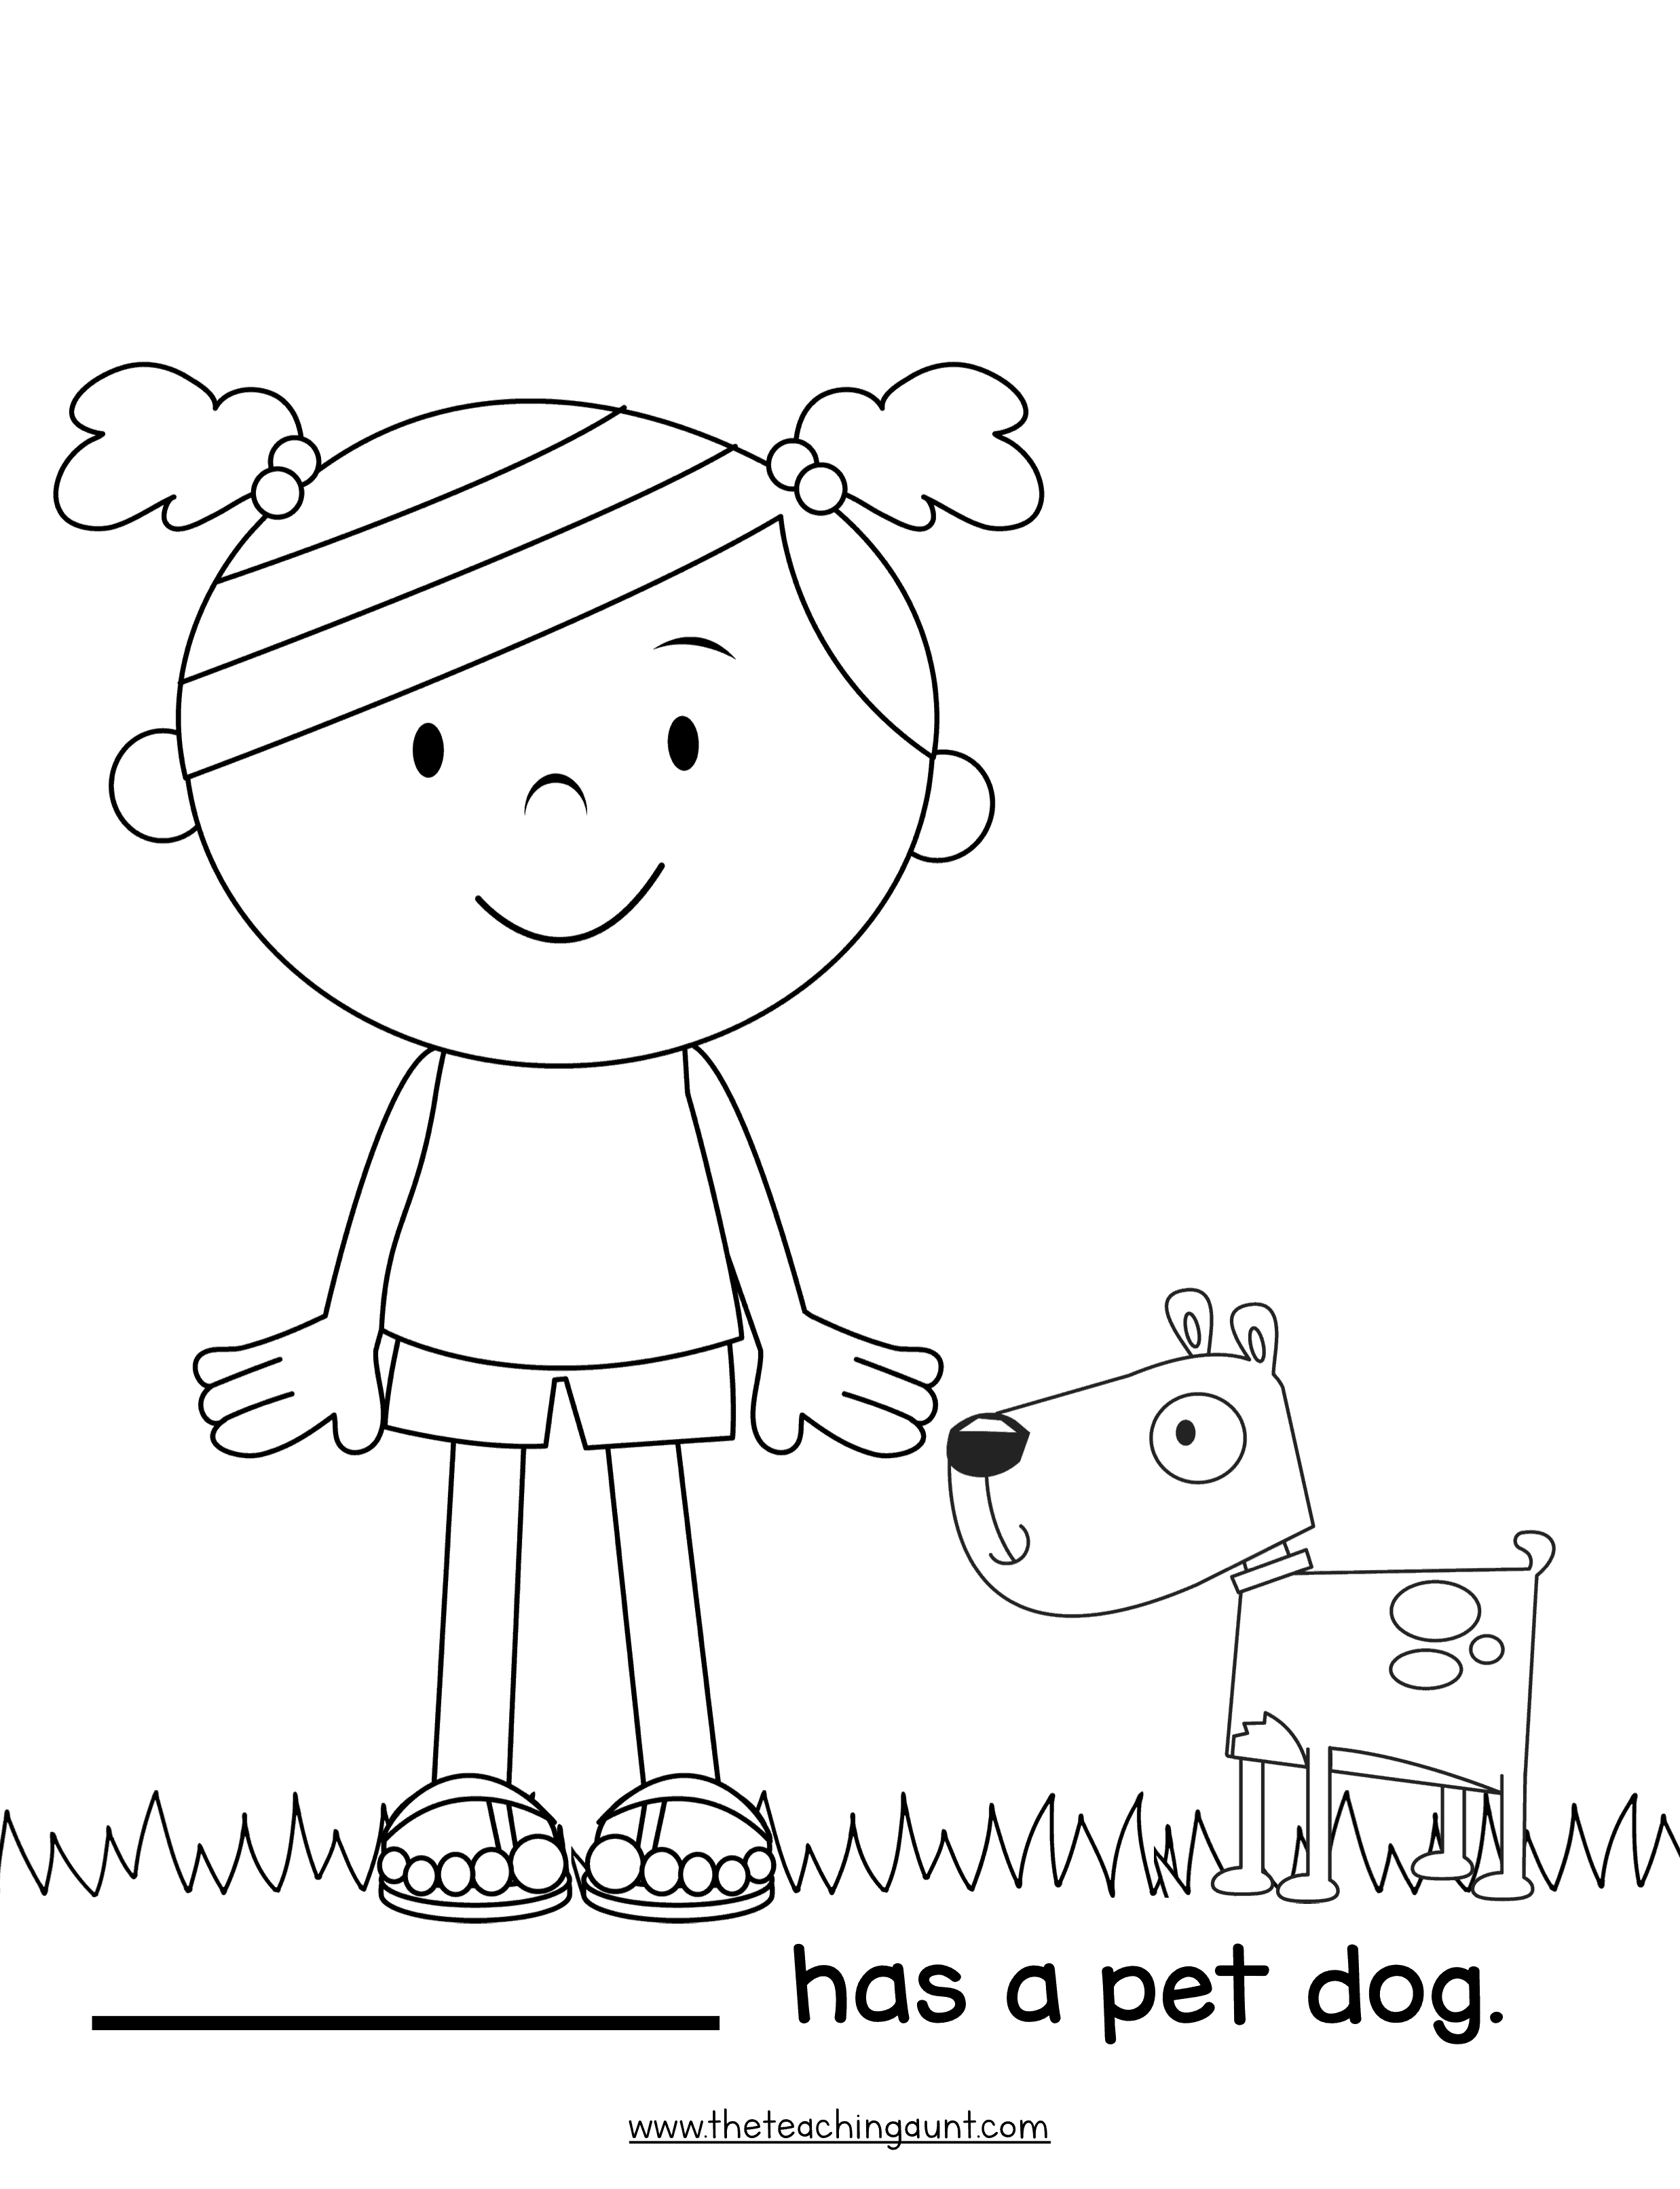 The Teaching Aunt Free Printable Coloring Pages for Preschoolers